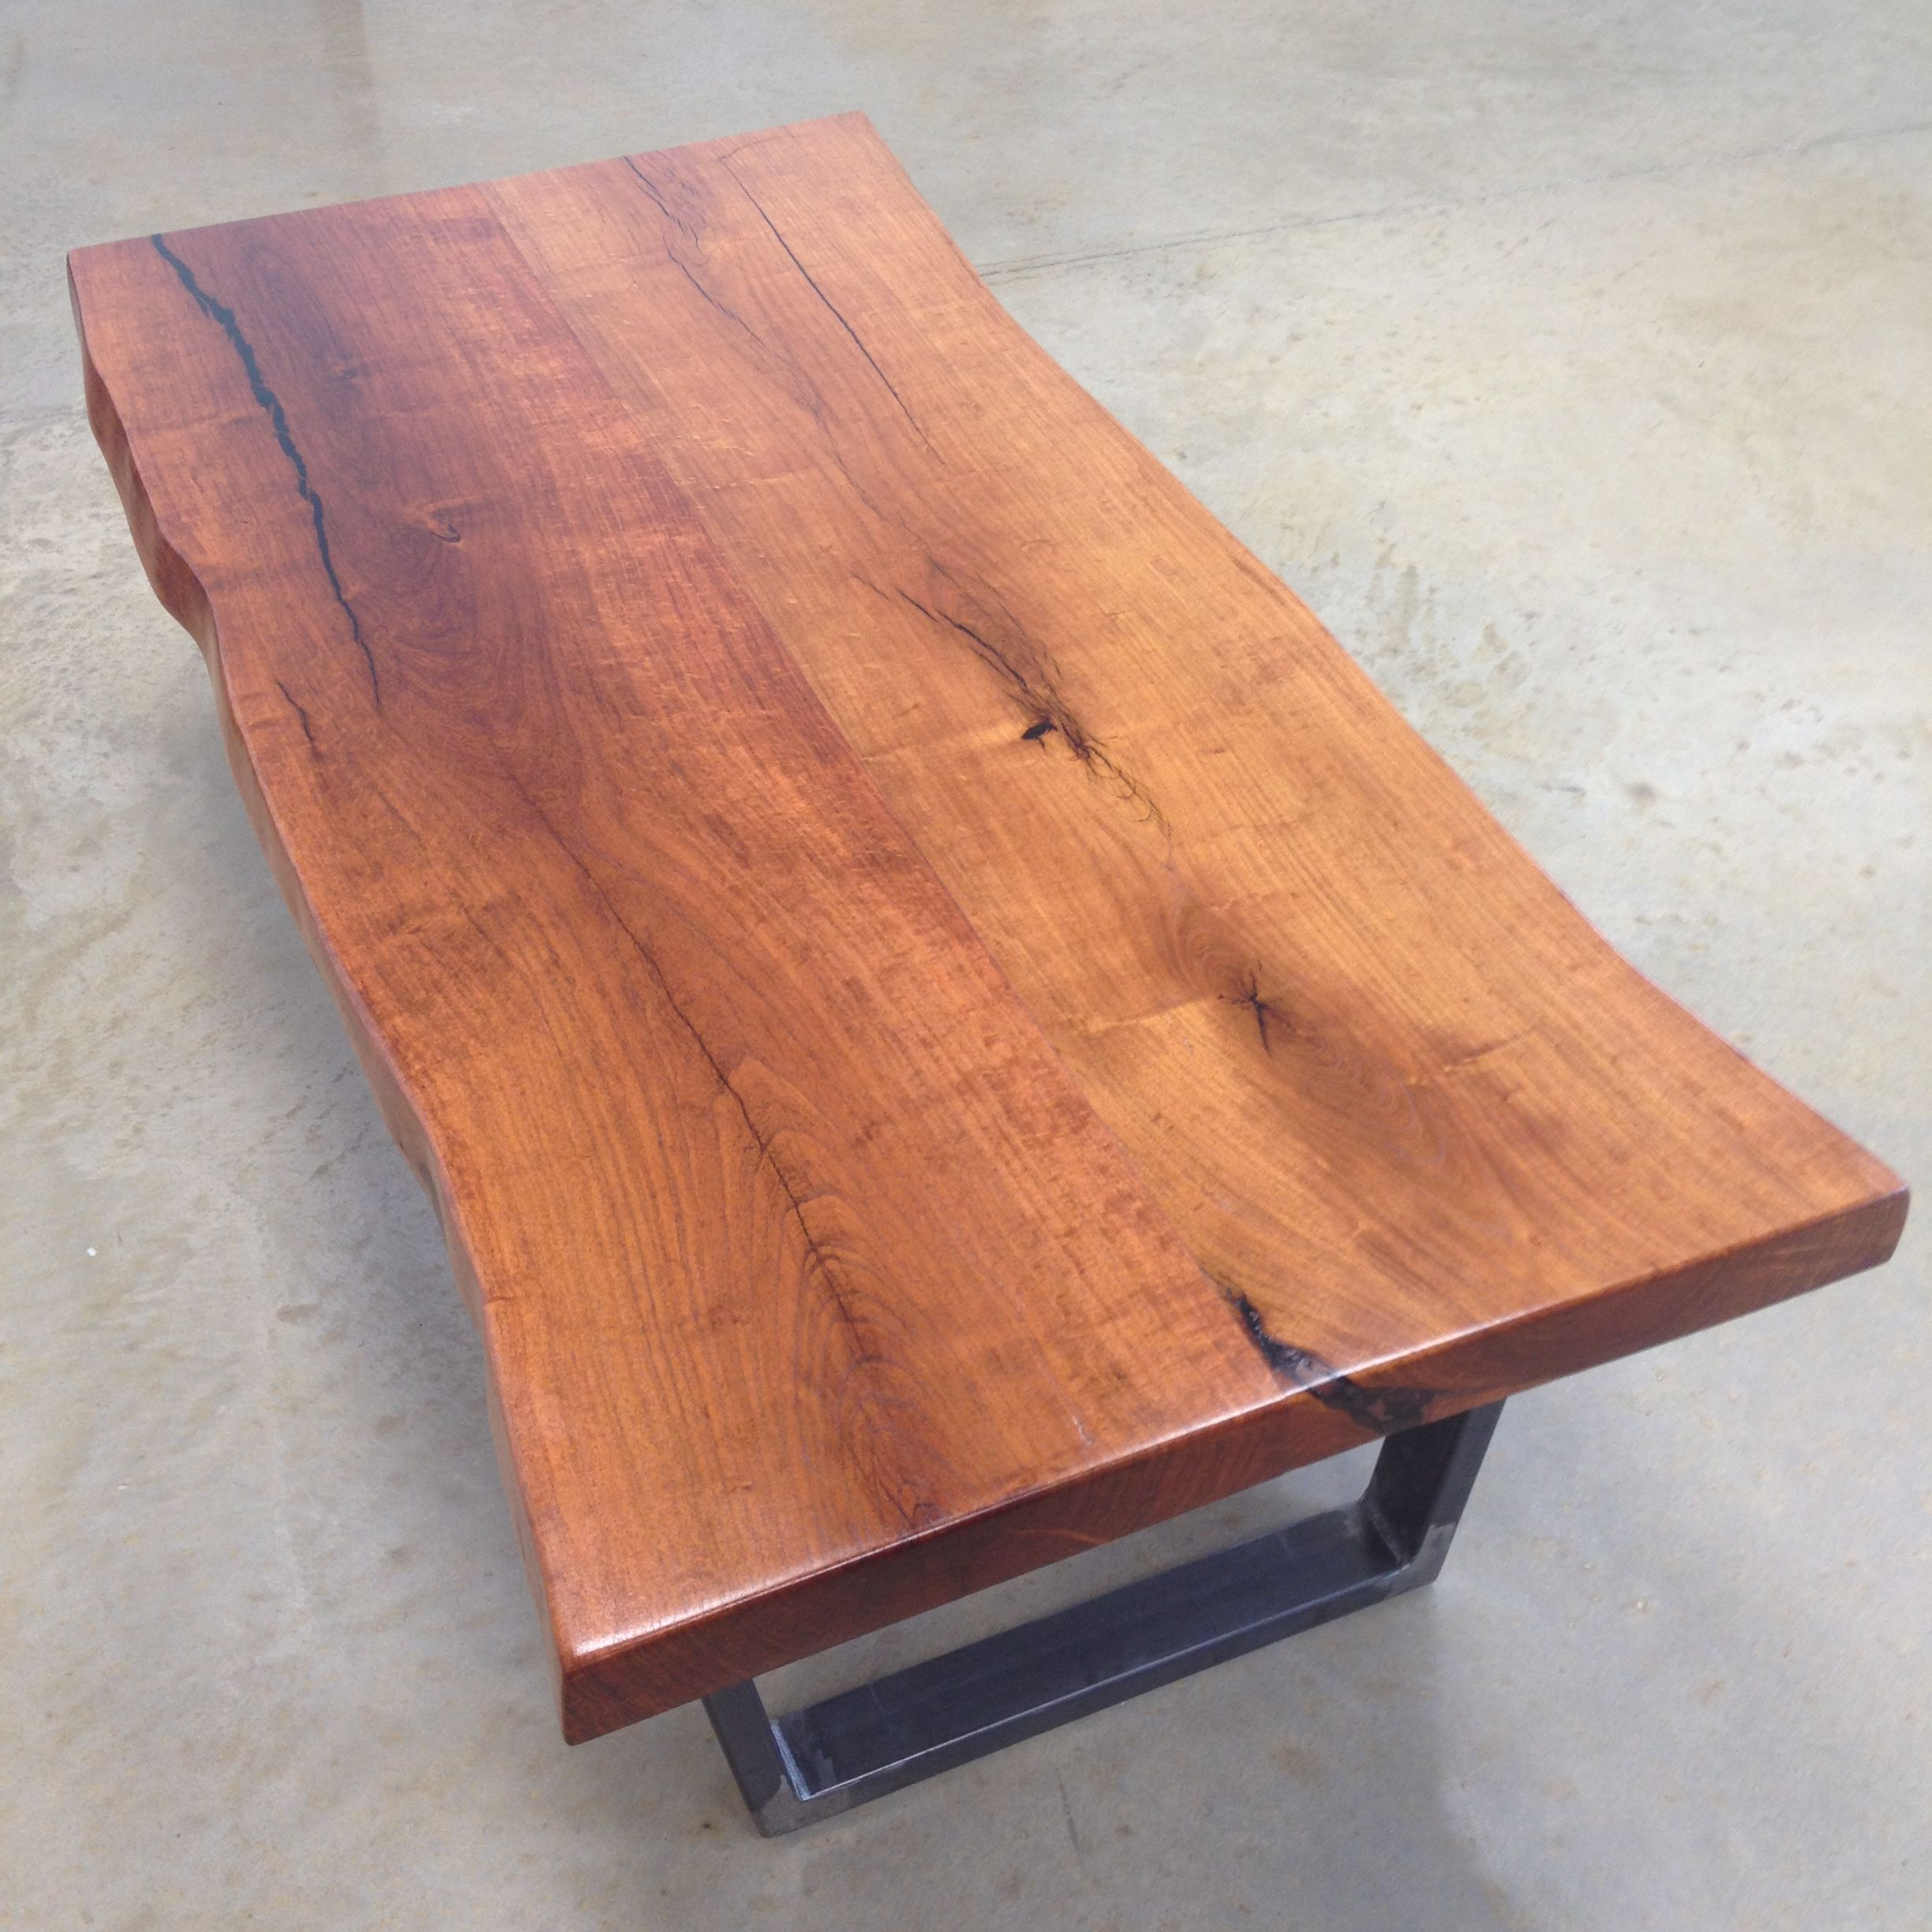 Buy A Hand Crafted Mesquite Coffee Table With Boatman Base